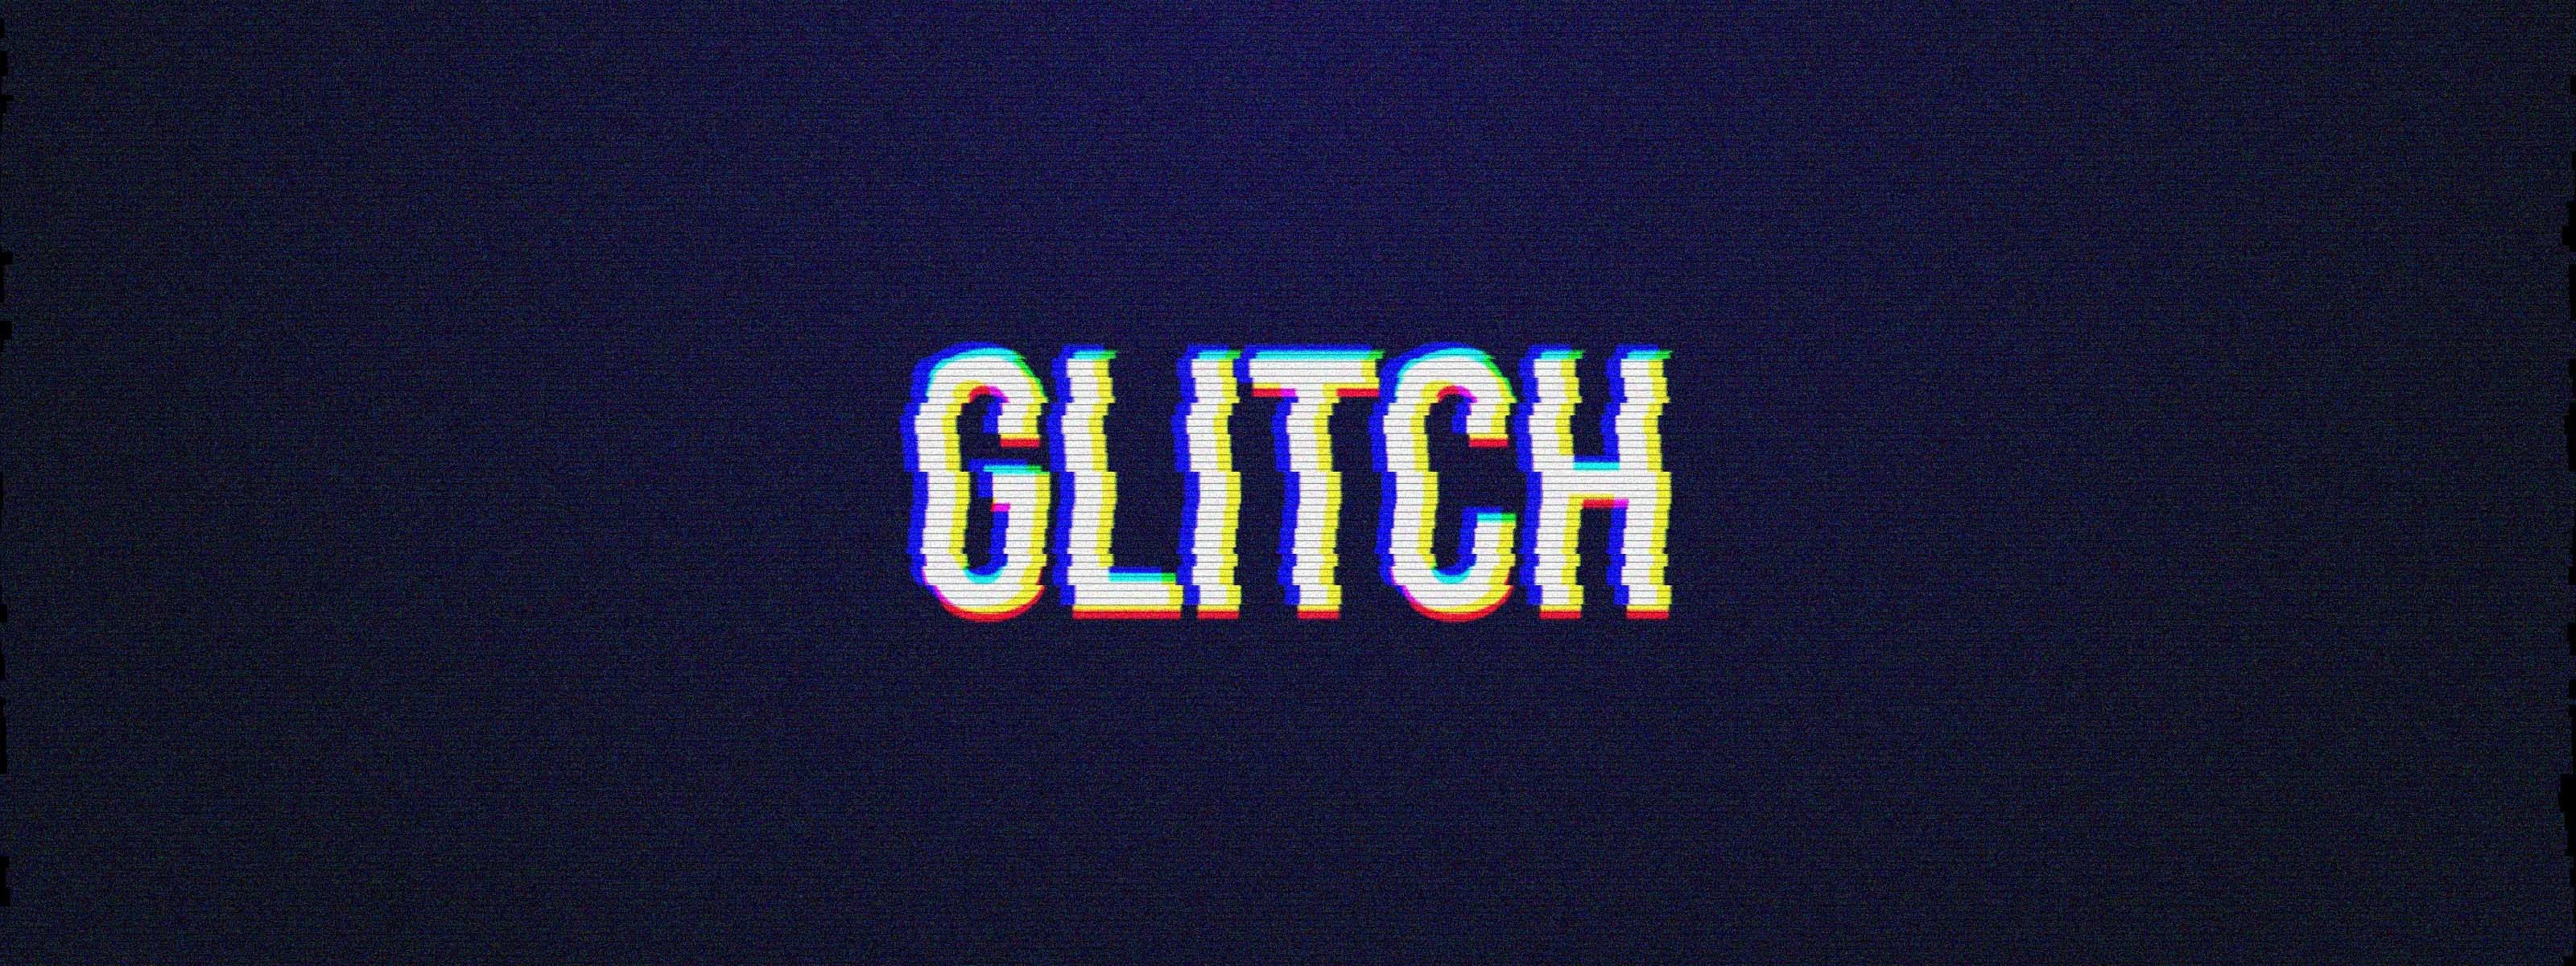 How To Create A Custom Glitch Effect in After Effects